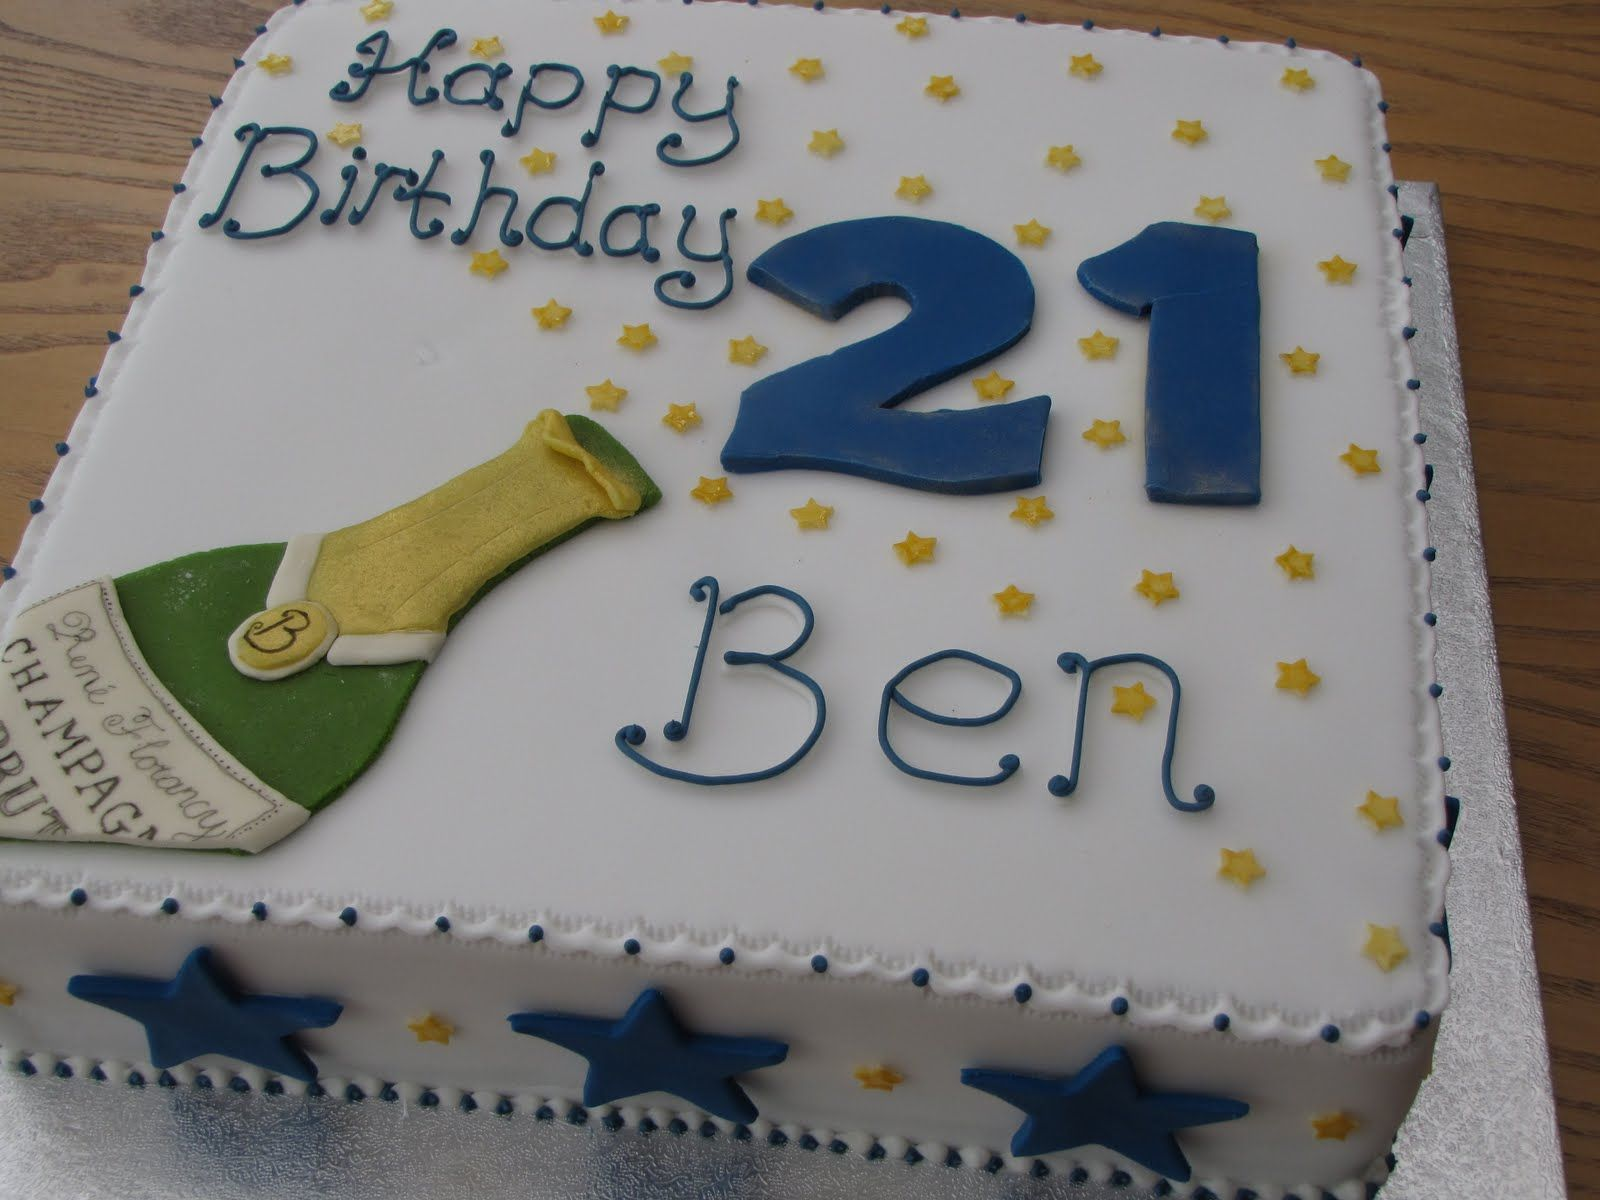 21 birthday cakes | 21st-birthday-cake-ideas-party-cake ...